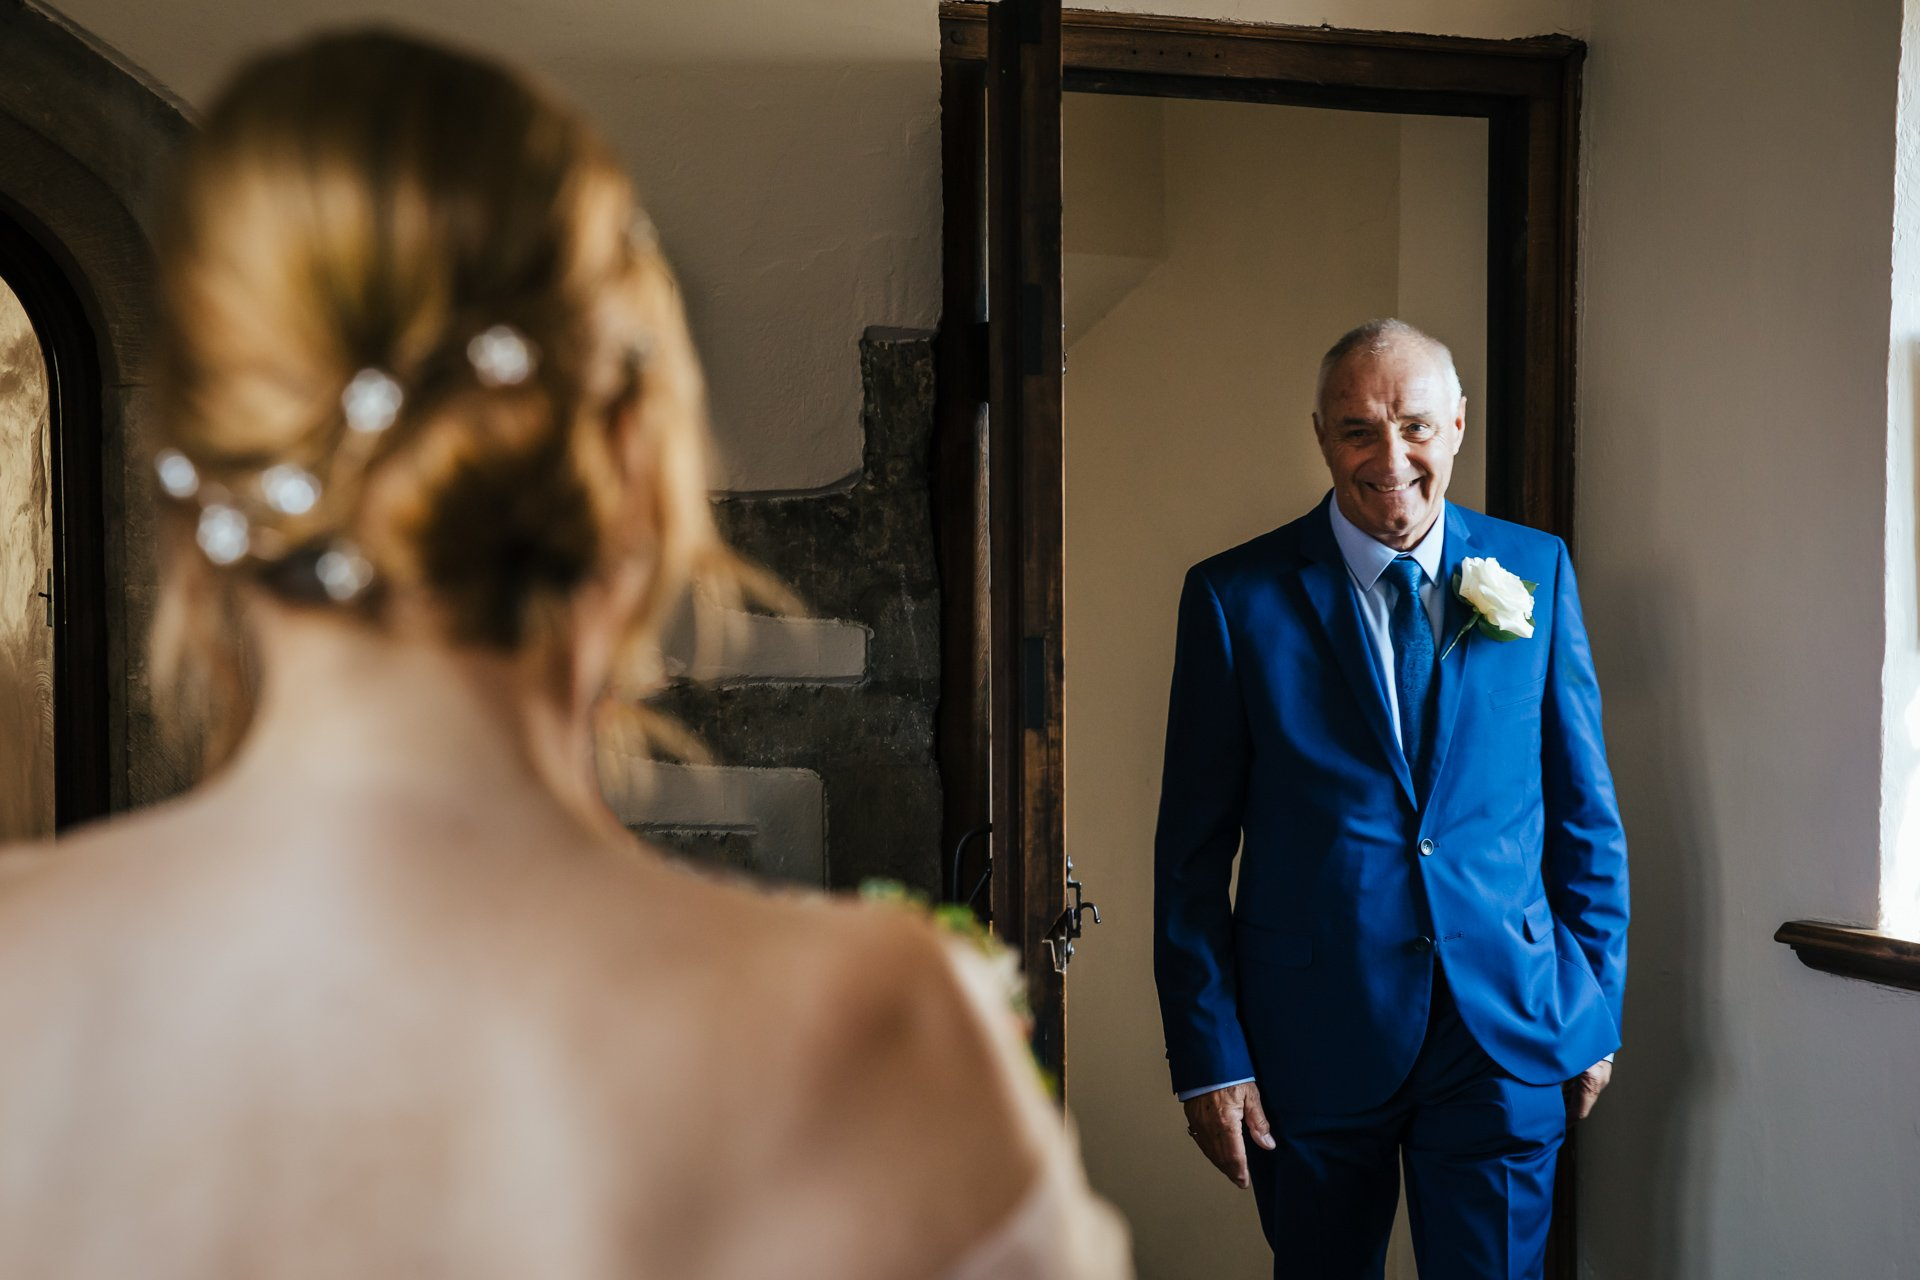 Father of the Bride seeing his daughter in her wedding dress for the first time at Allington Castle